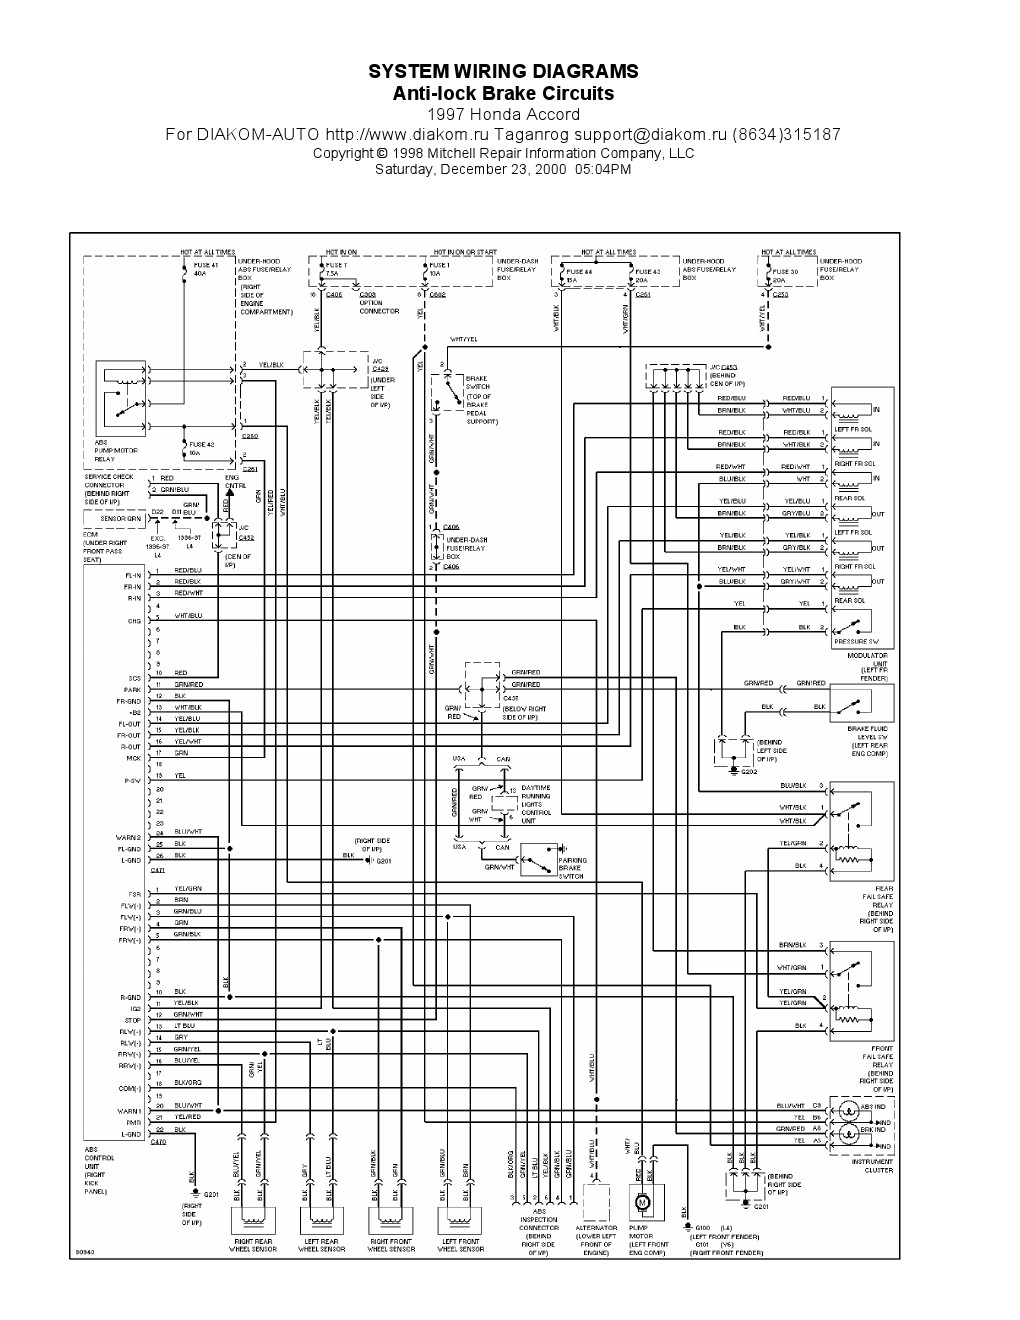 1997 honda accord anti lock brake abs circuit diagram